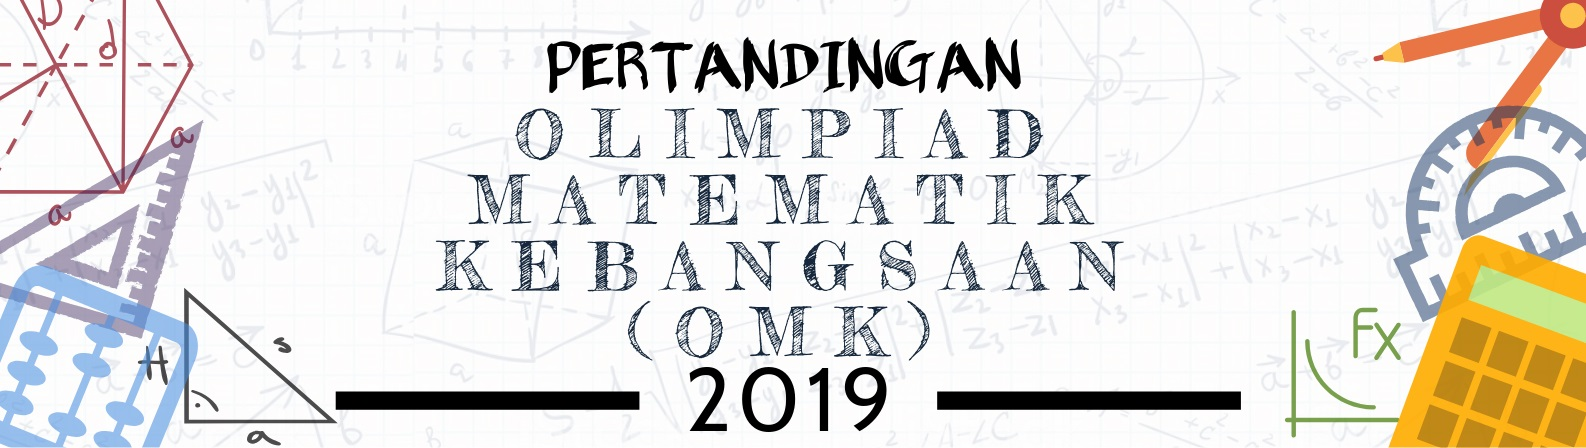 OMK2019